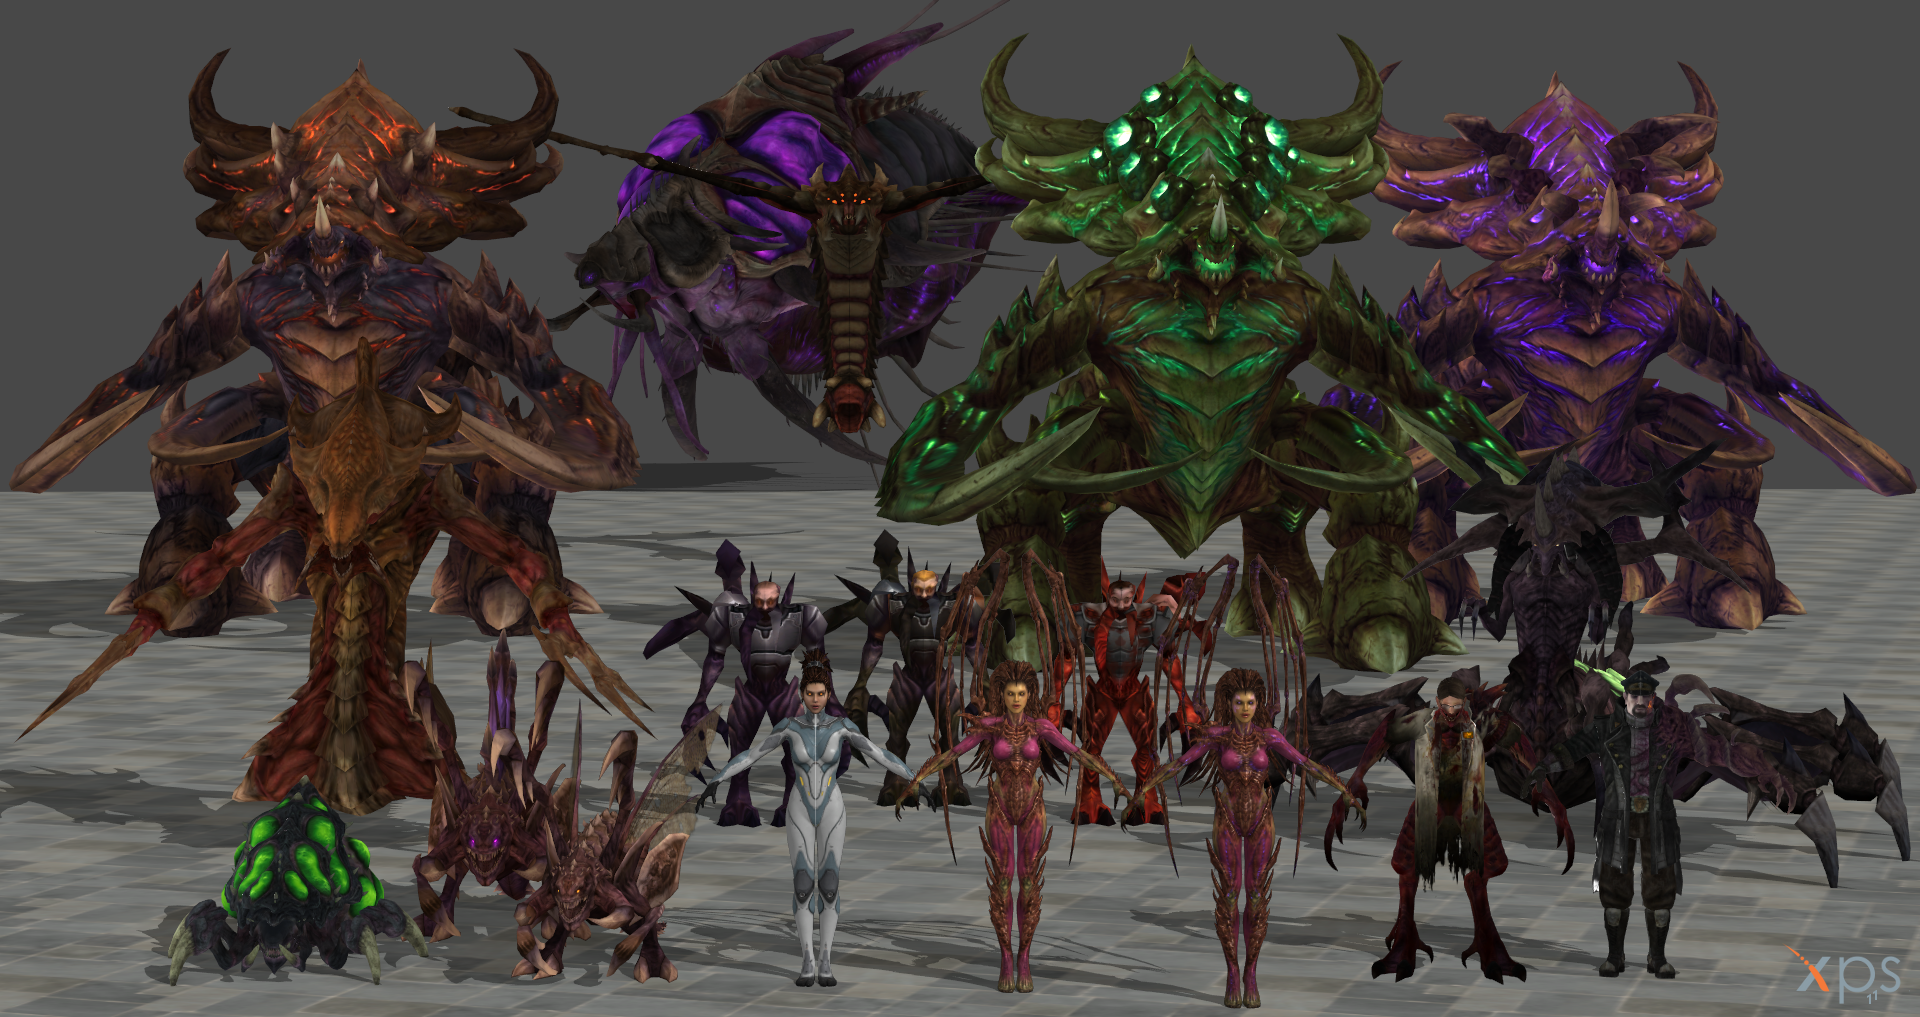 Starcraft Zerg Megapack for XPS! by Hellraiser-89 on DeviantArt